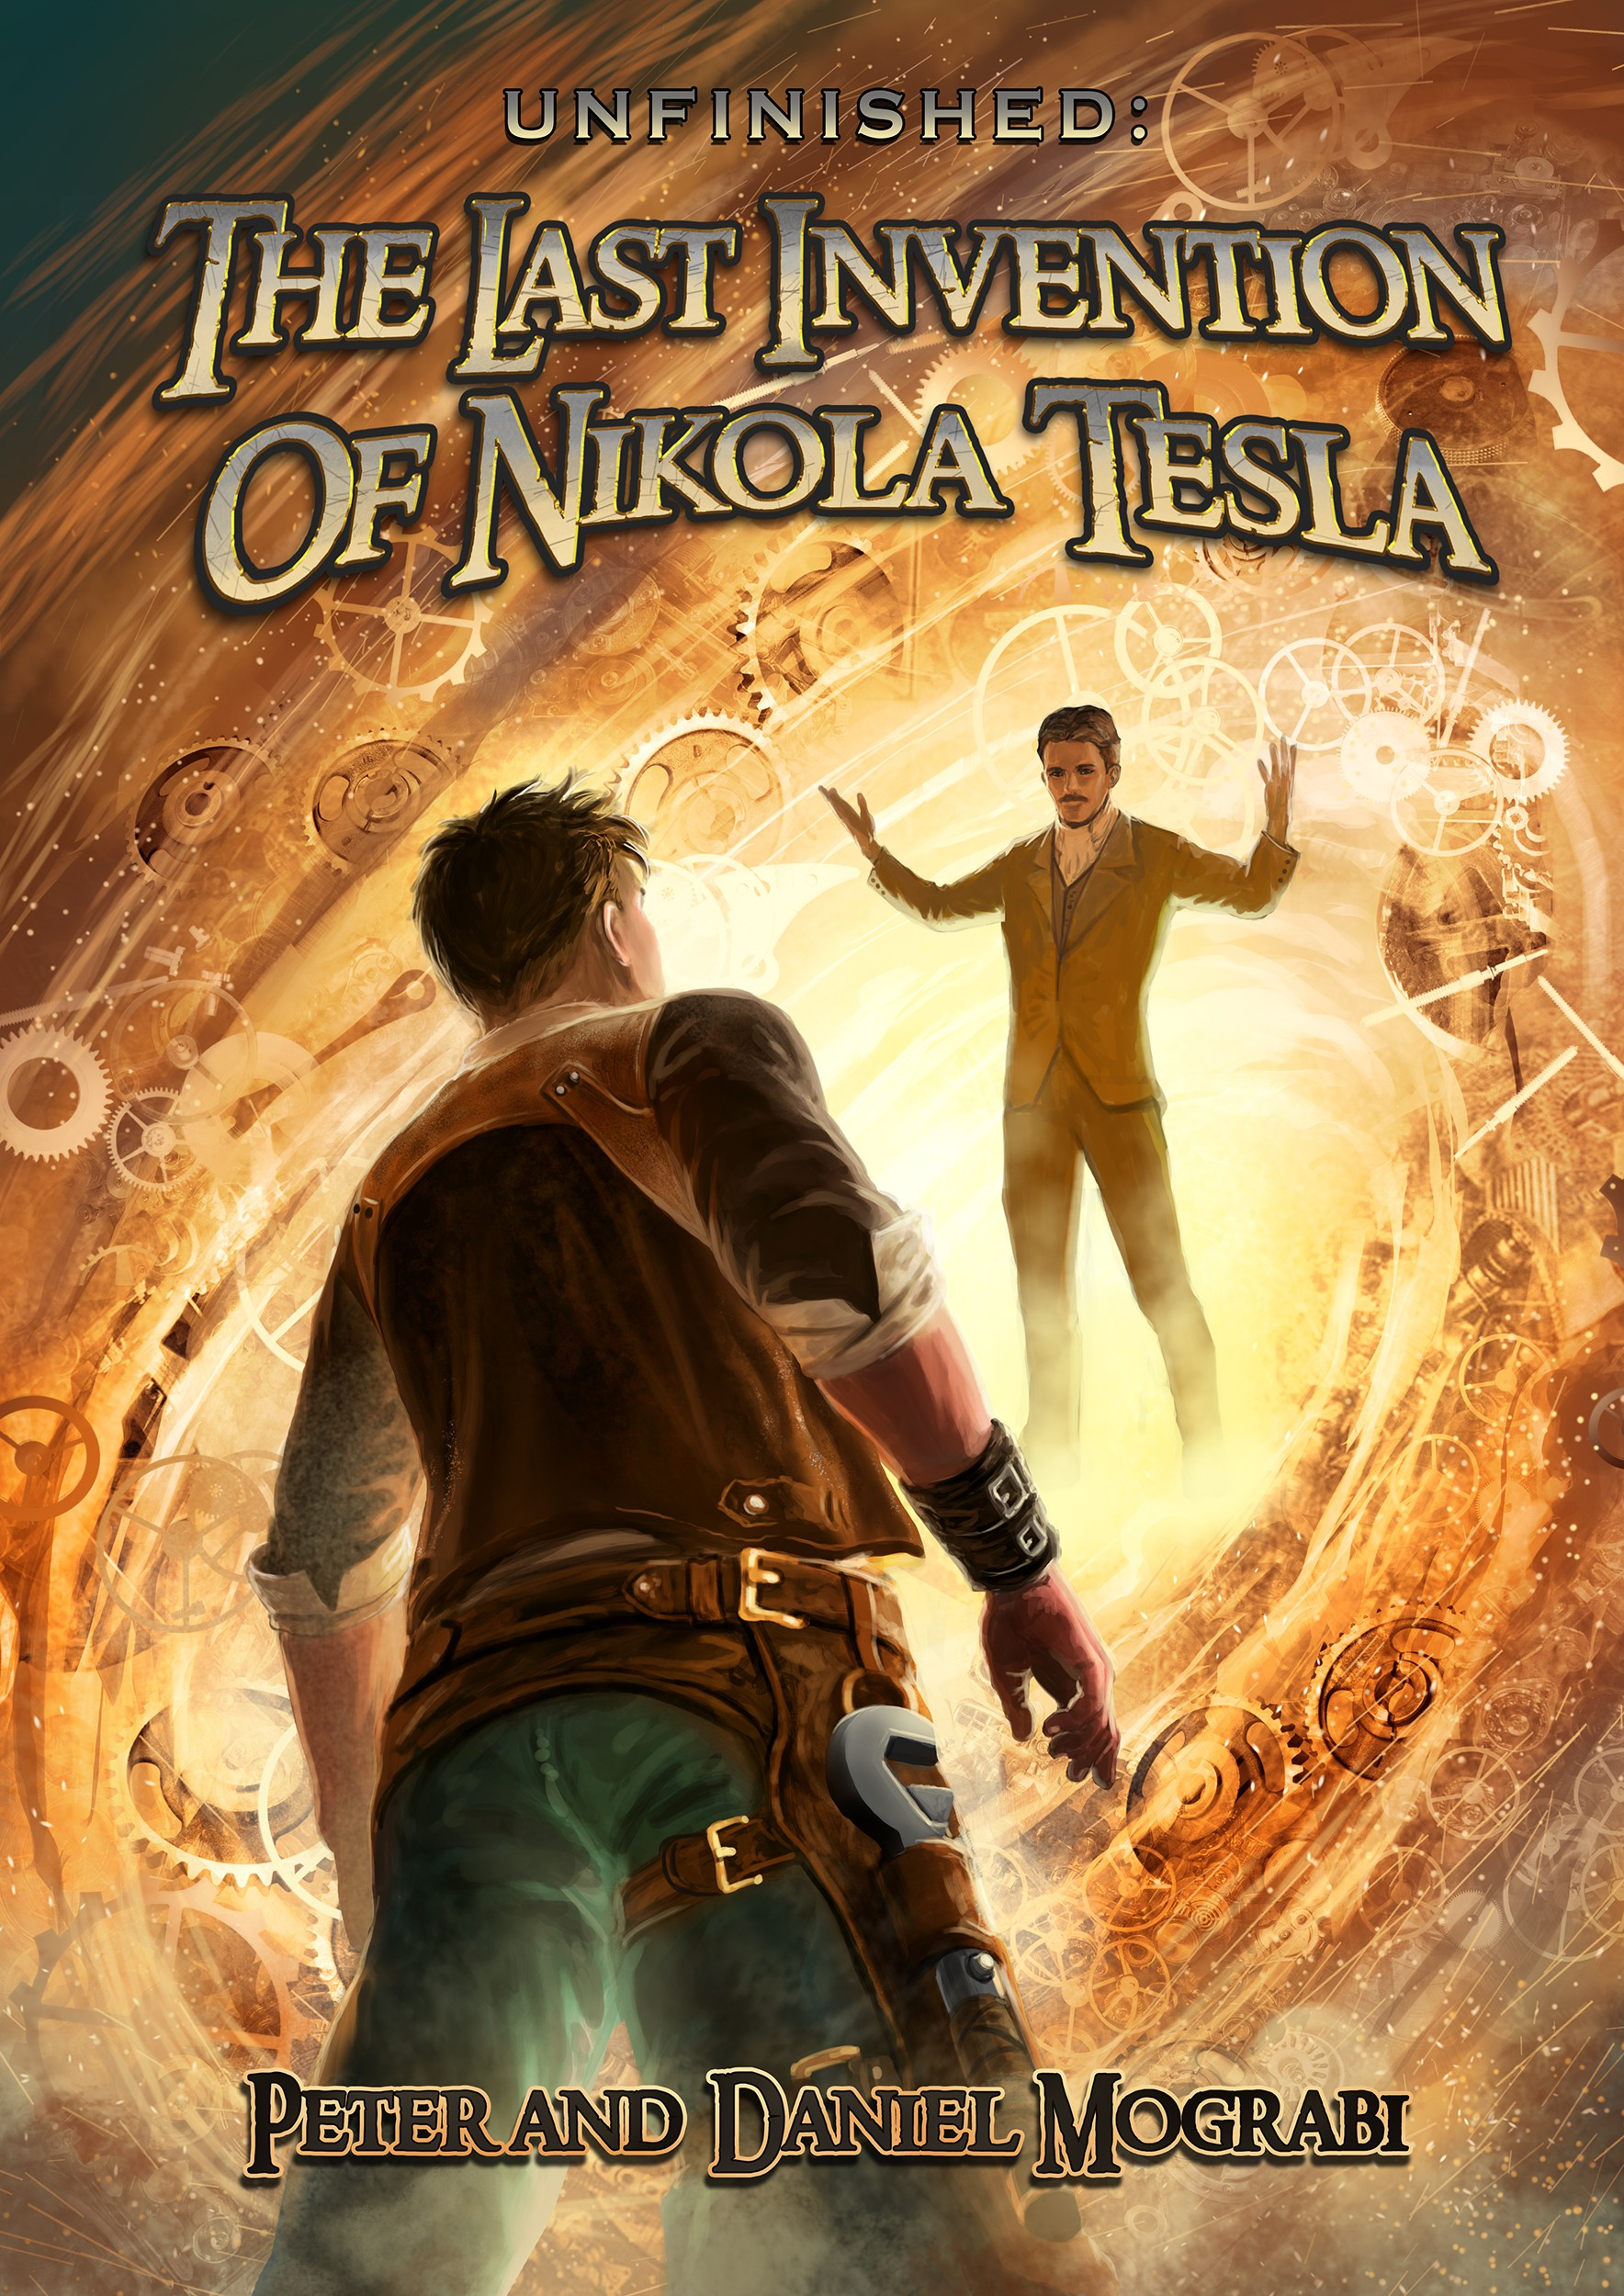 Finish the legacy of Nikola Tesla with a captivating book cover